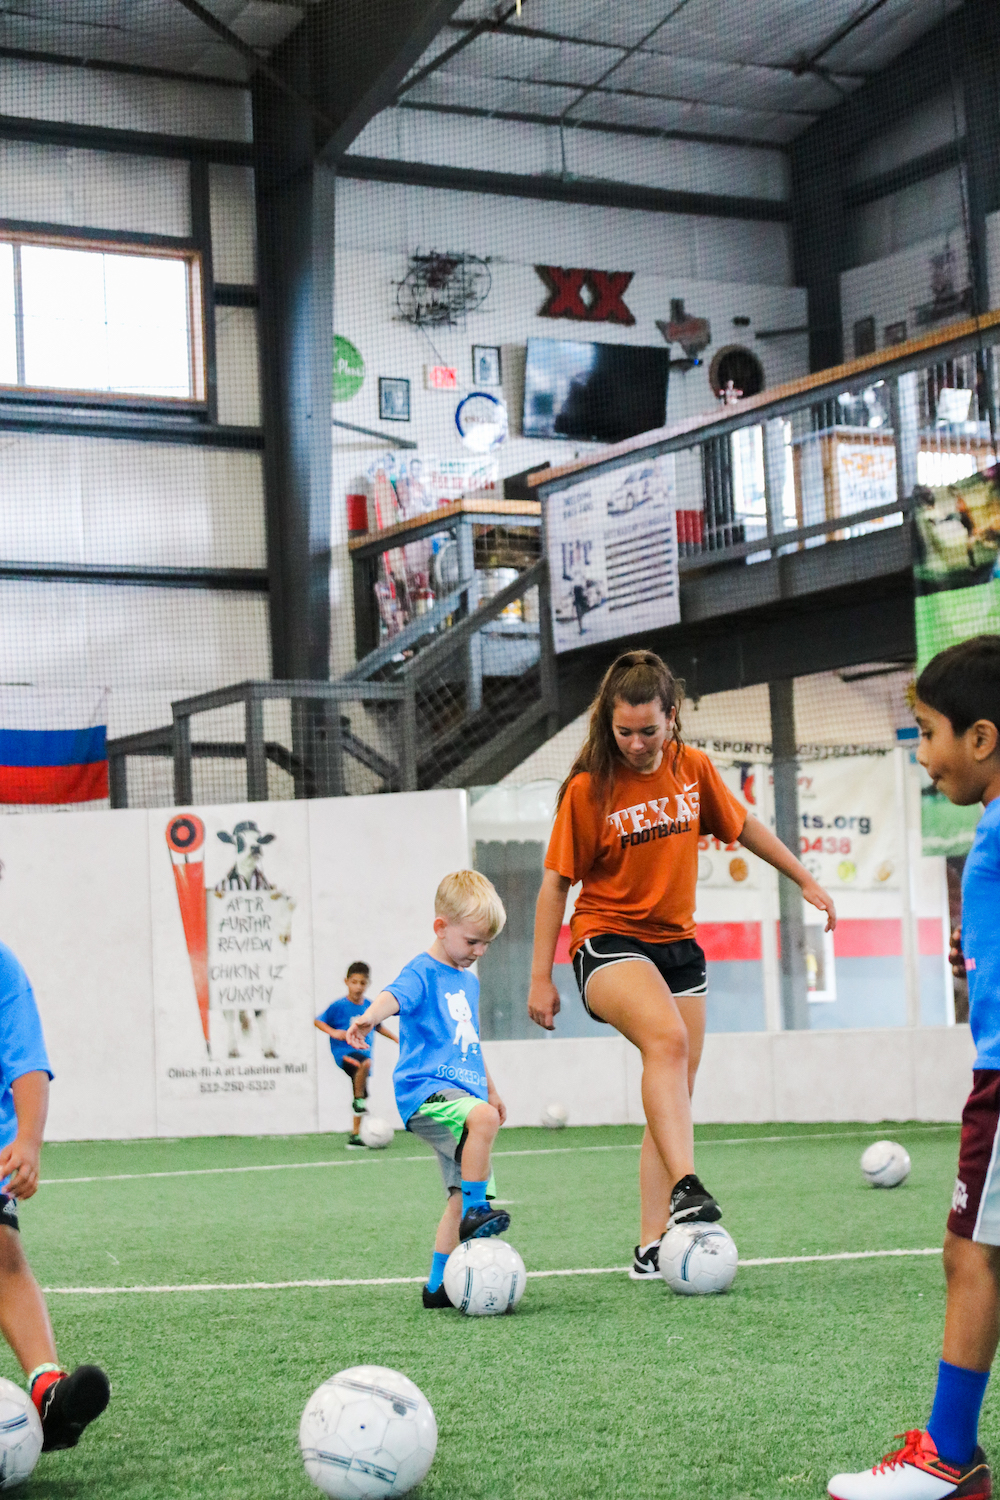 soccer zone Lakeline, austin soccer, round rock soccer, cedar park soccer, austin soccer league, kids playing sports, when to put your child in sports, kids soccer league, austin mom blog, austin blogger, parenting blog, soccer mom